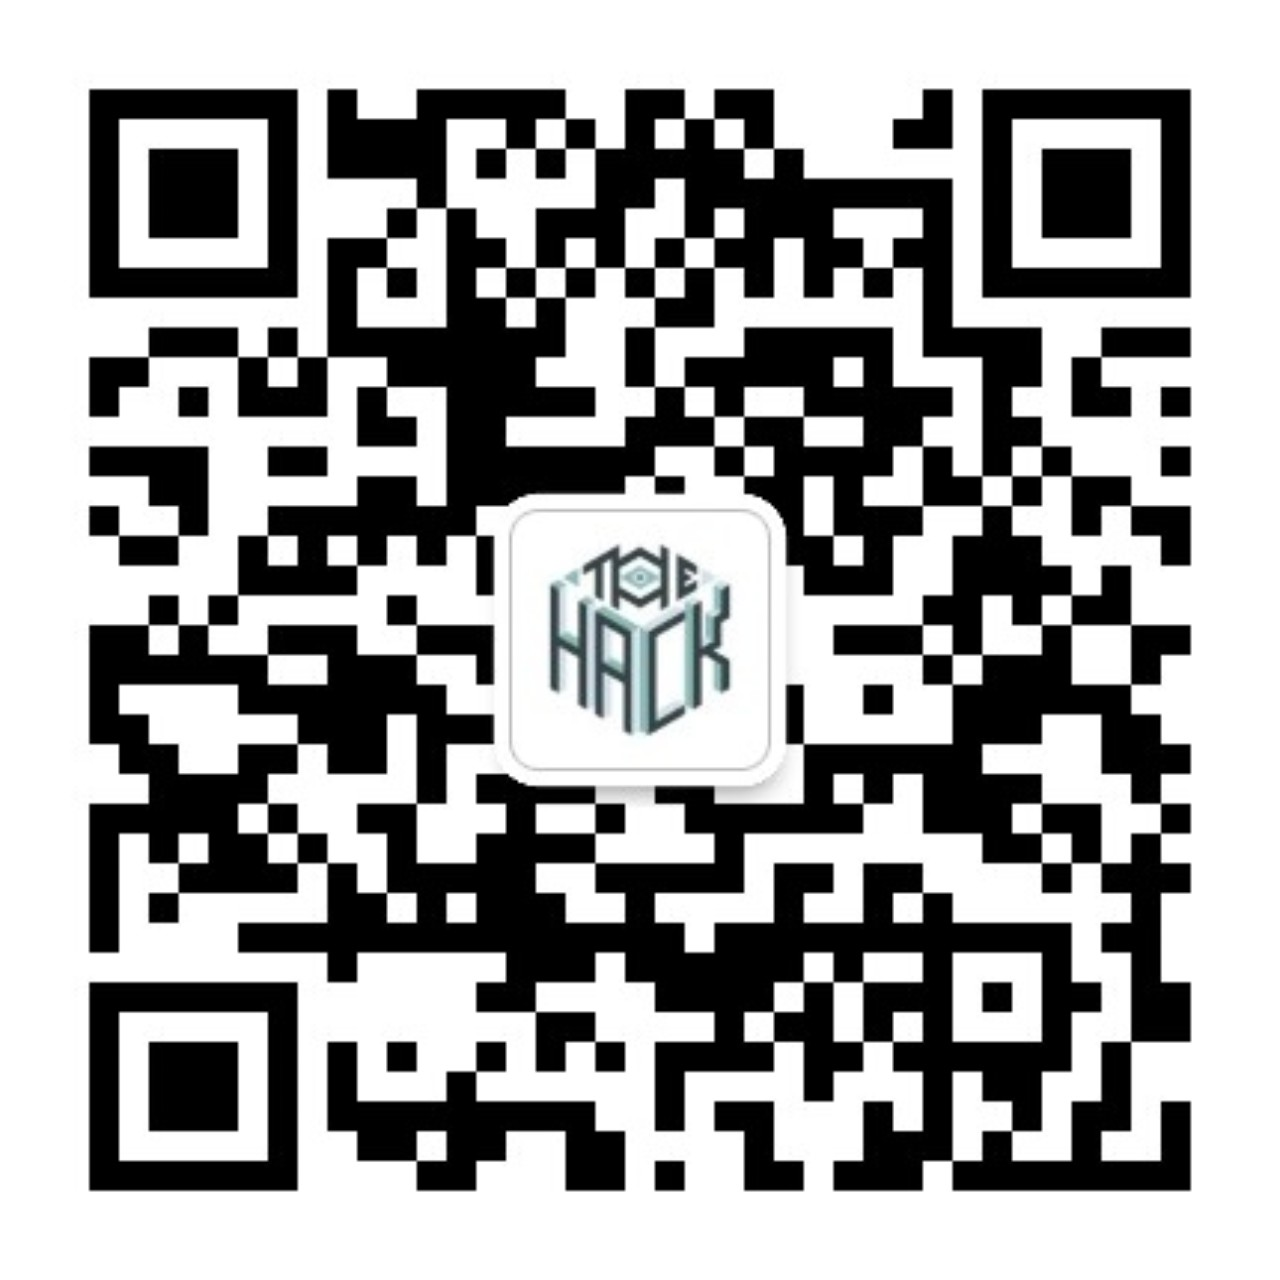 THE Hack WeChat QR Code